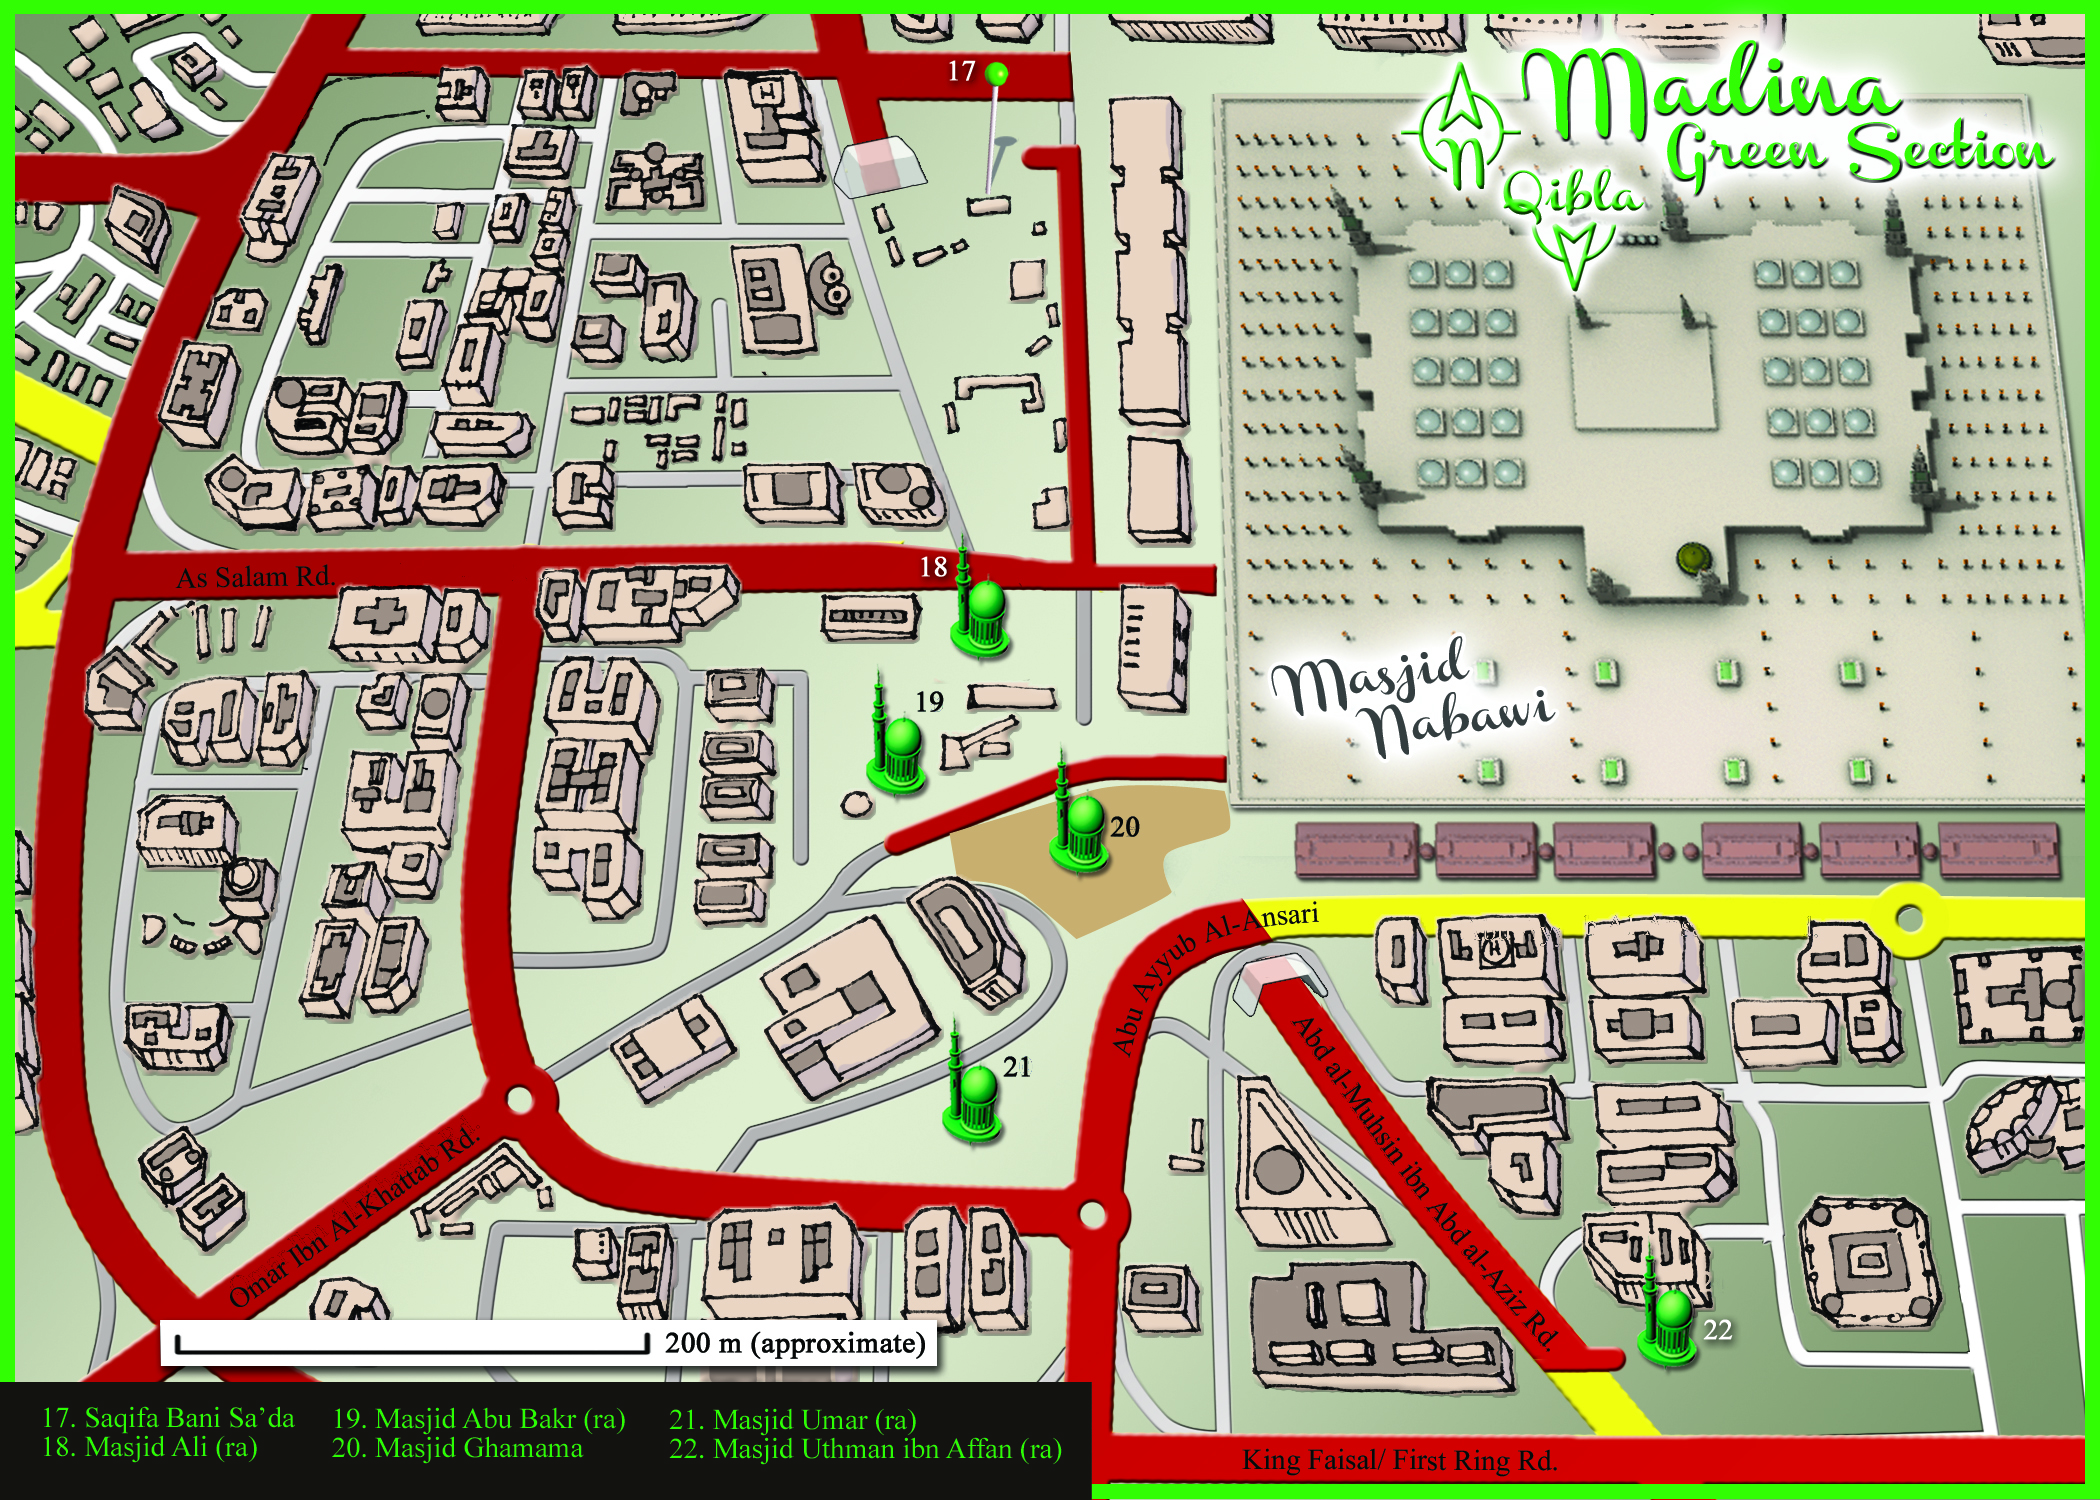 Medina Map: Green Section Detail